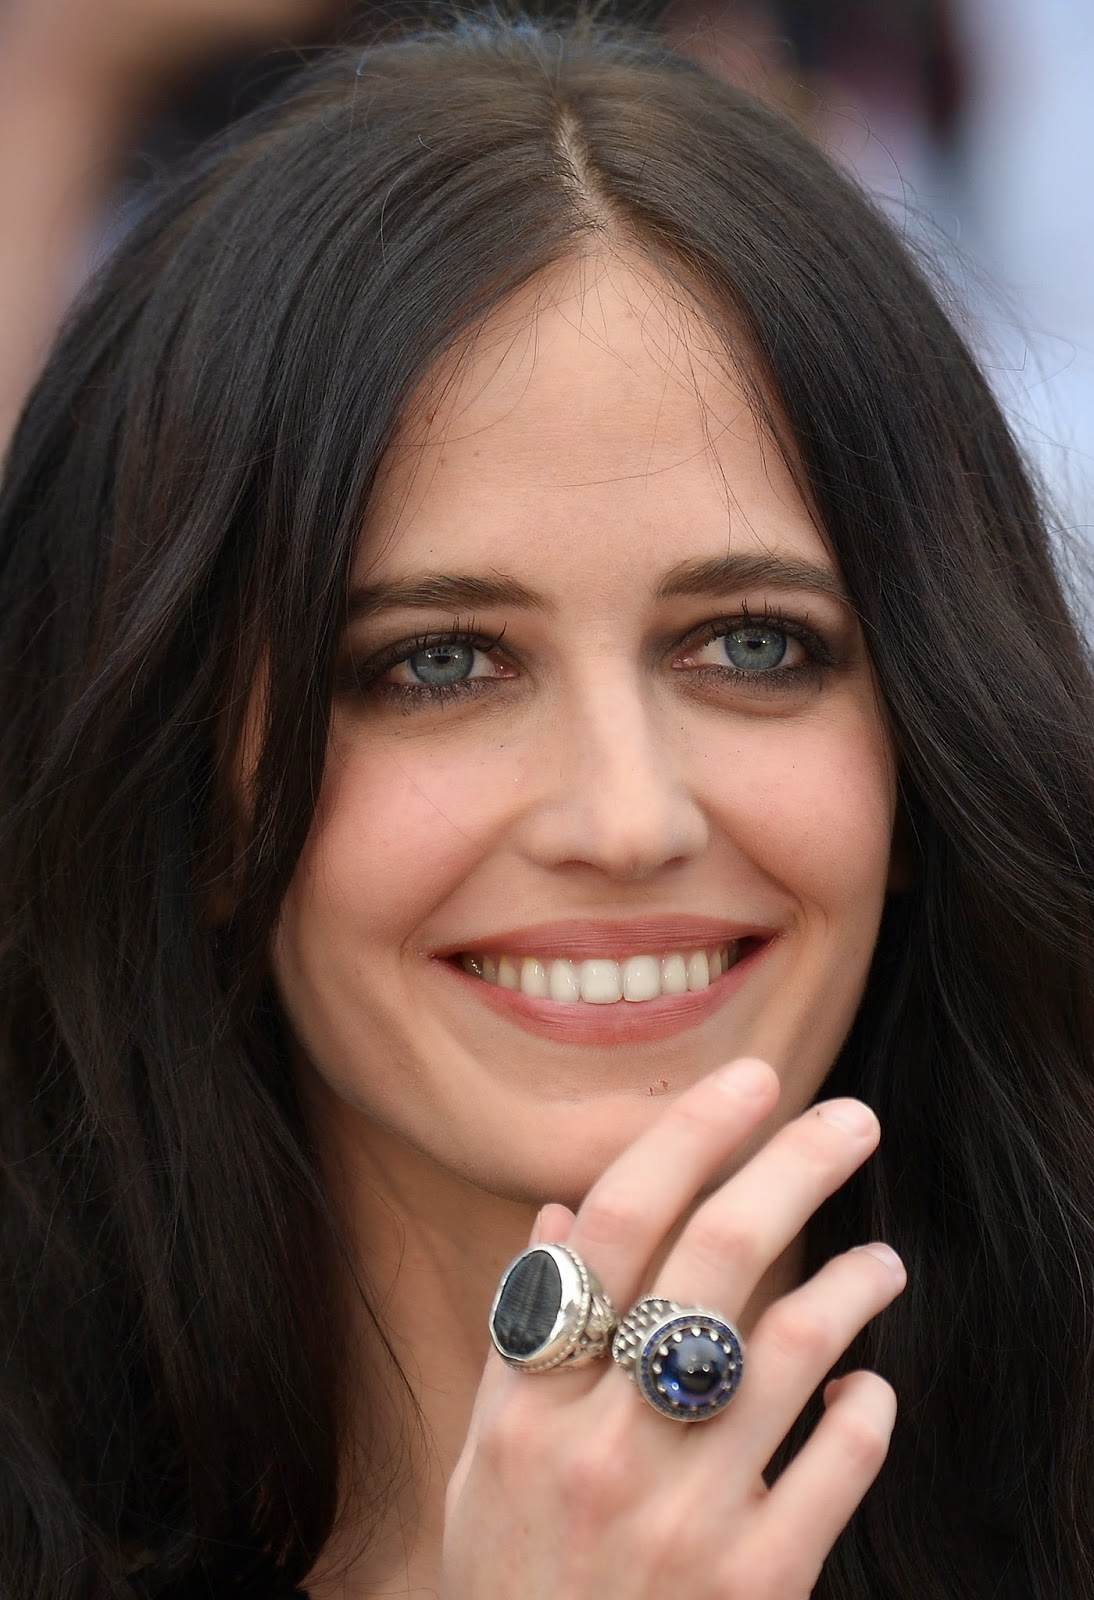 Cannes, Cannes Festival, Cannes Film Festival, Entertainment, Eva Green, Eva Green Photo, Film, France, Hollywood, Hollywood Actress, Showbiz, The Salvation,